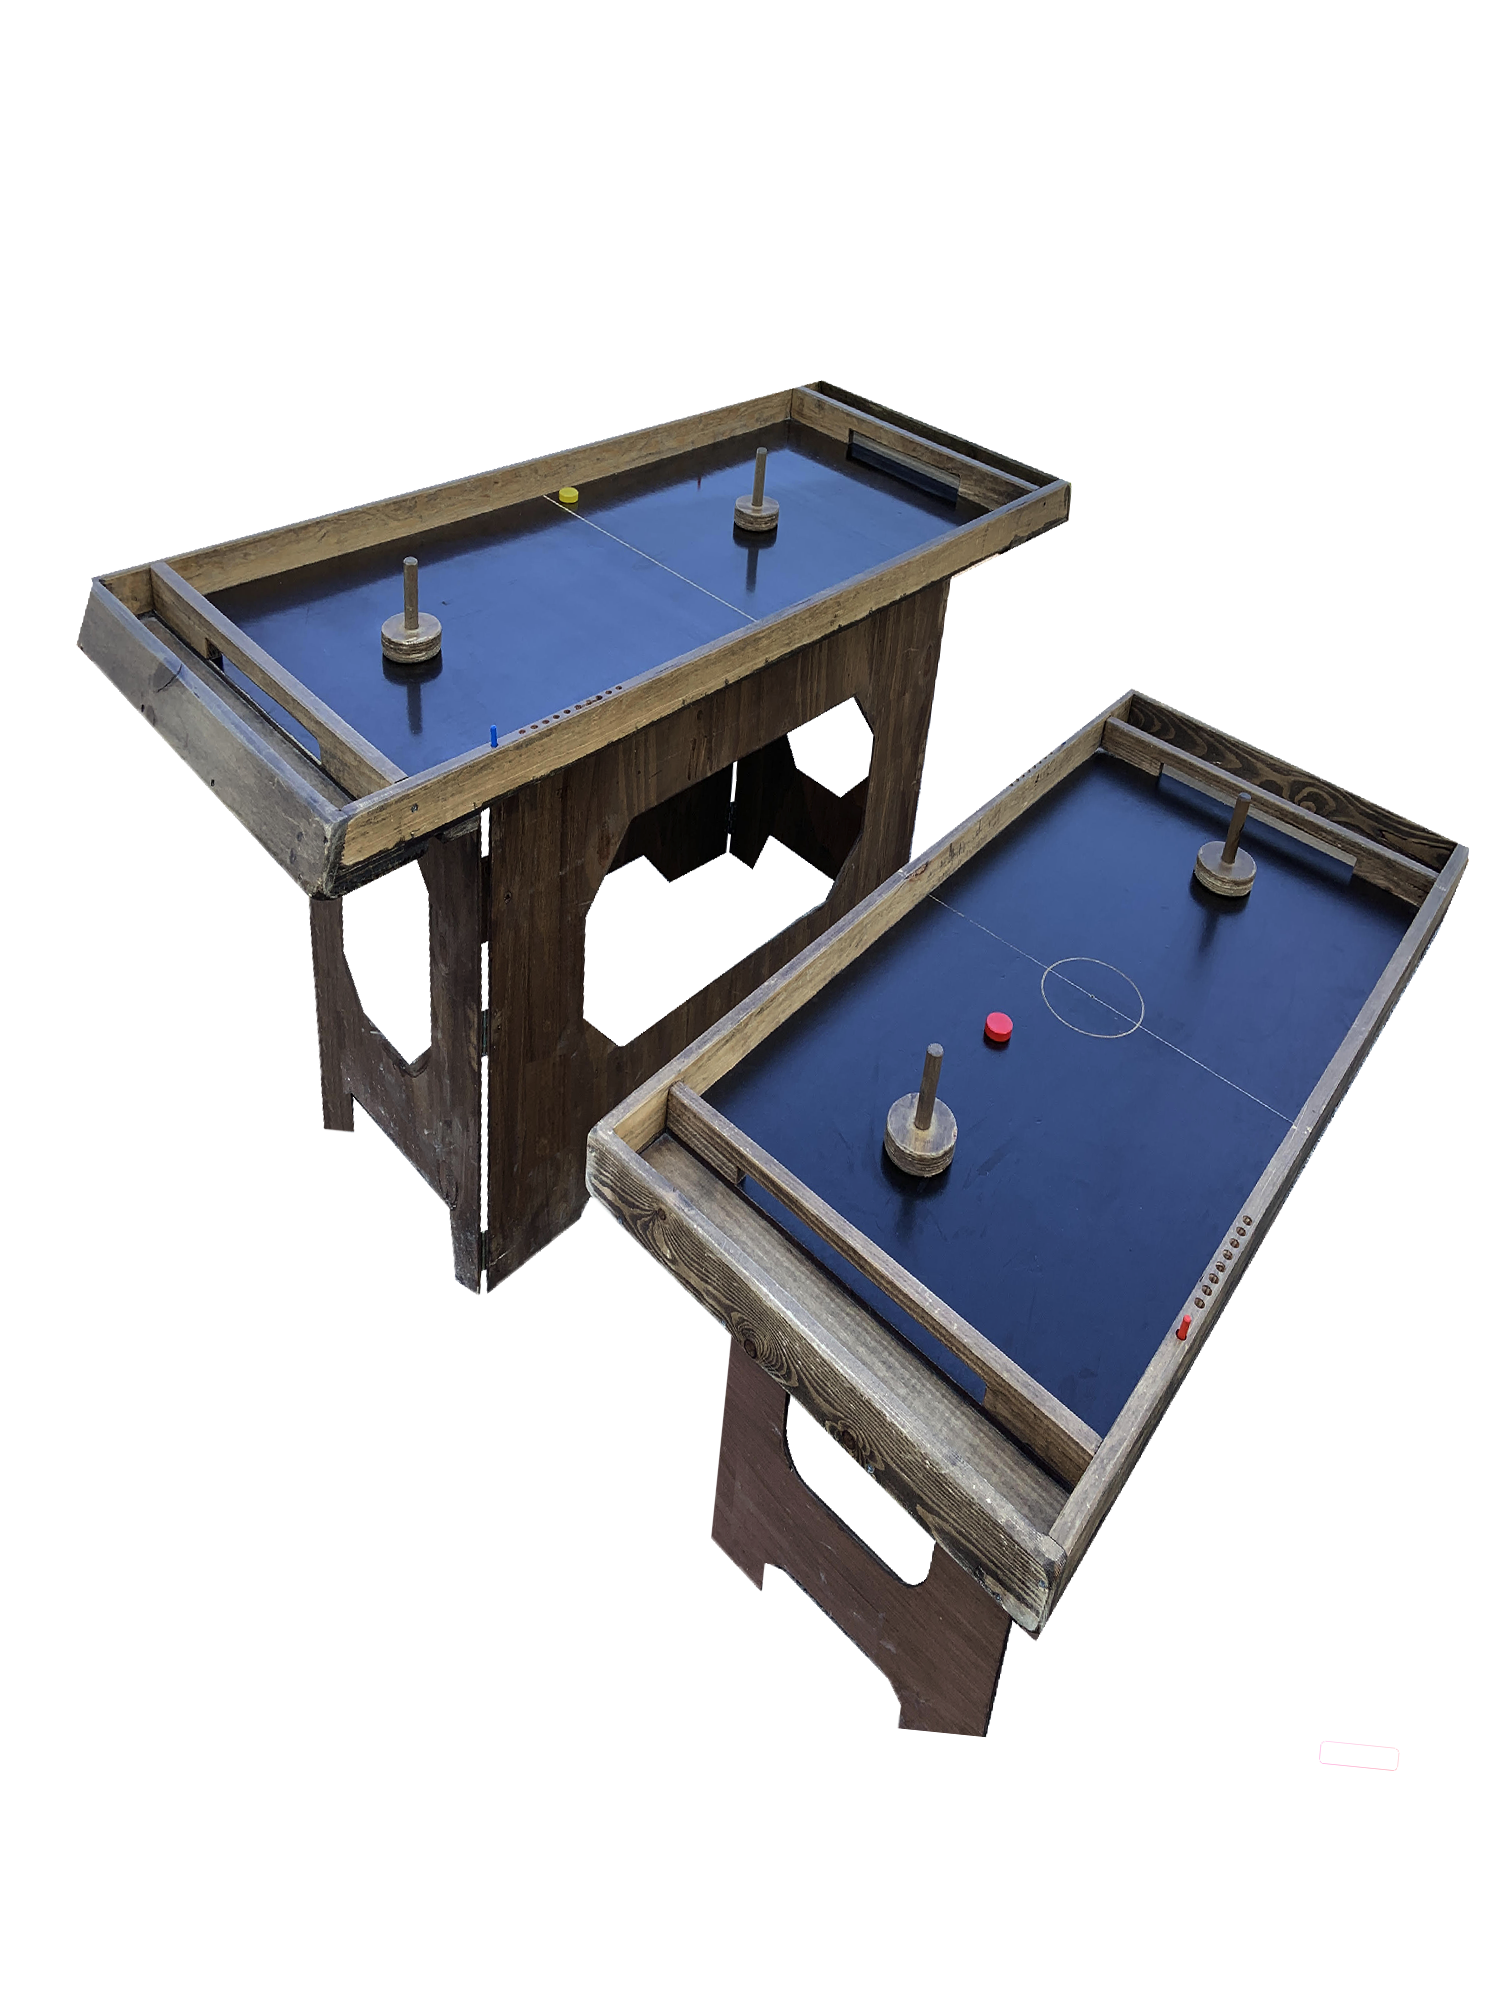 LA CASE DU JEU : BILLARD HOCKEY petit